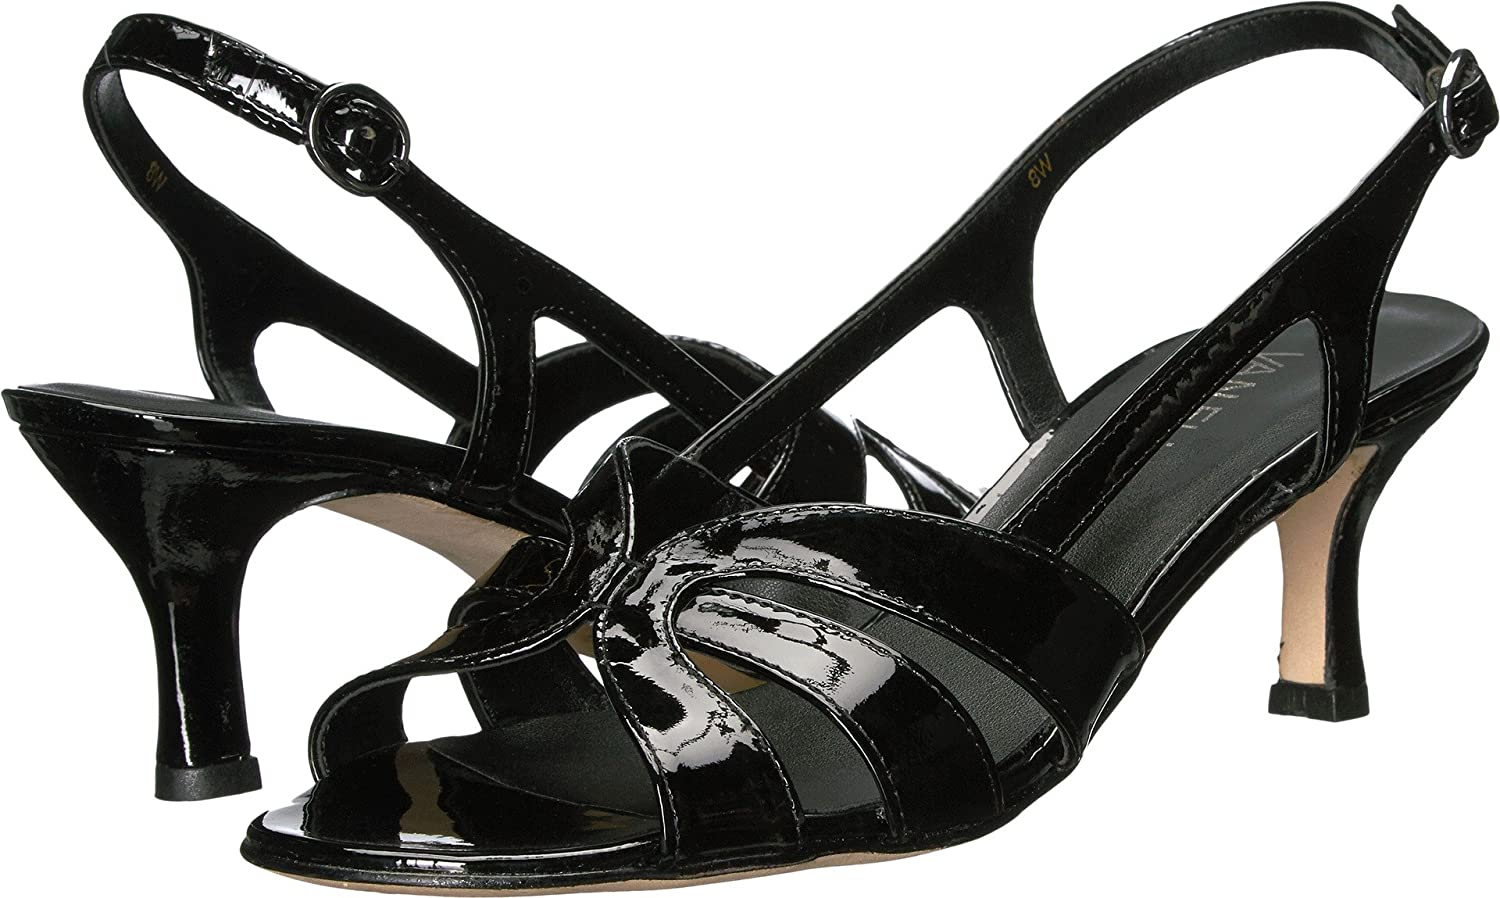 VANELi Women's Maeve Dress Sandal B01N9M0MTY 8.5 B(M) US|Black Patent/Gunmetal Buckle